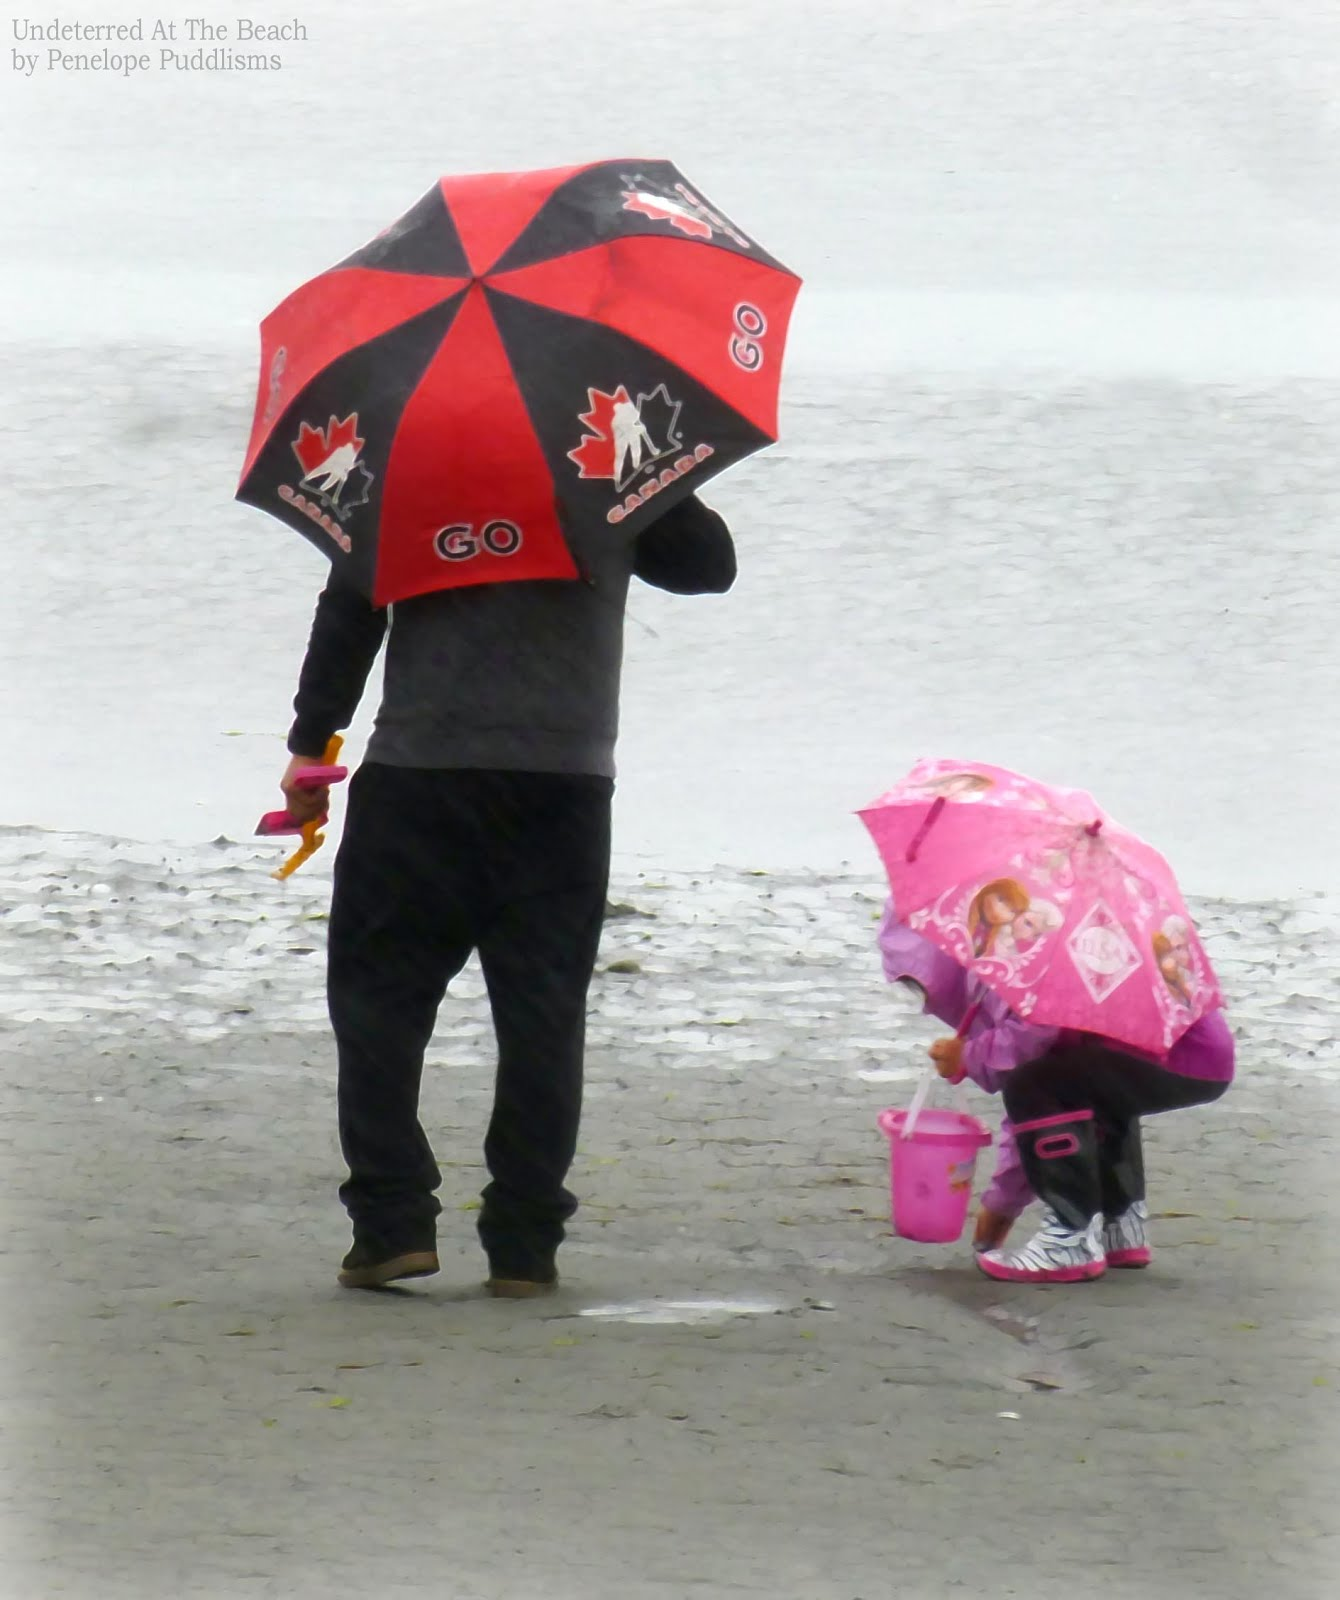 SWEATER ... SUNSCREEN ... UMBRELLA? CLICK BELOW FOR LOCAL BC WEATHER